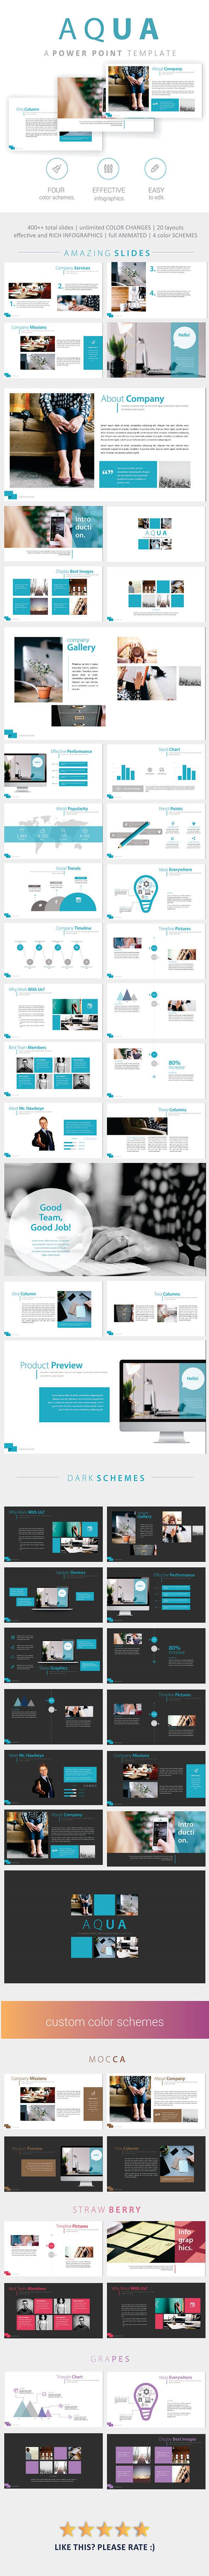 225 best layout landscape images on pinterest presentation design aqua powerpoint template toneelgroepblik Image collections